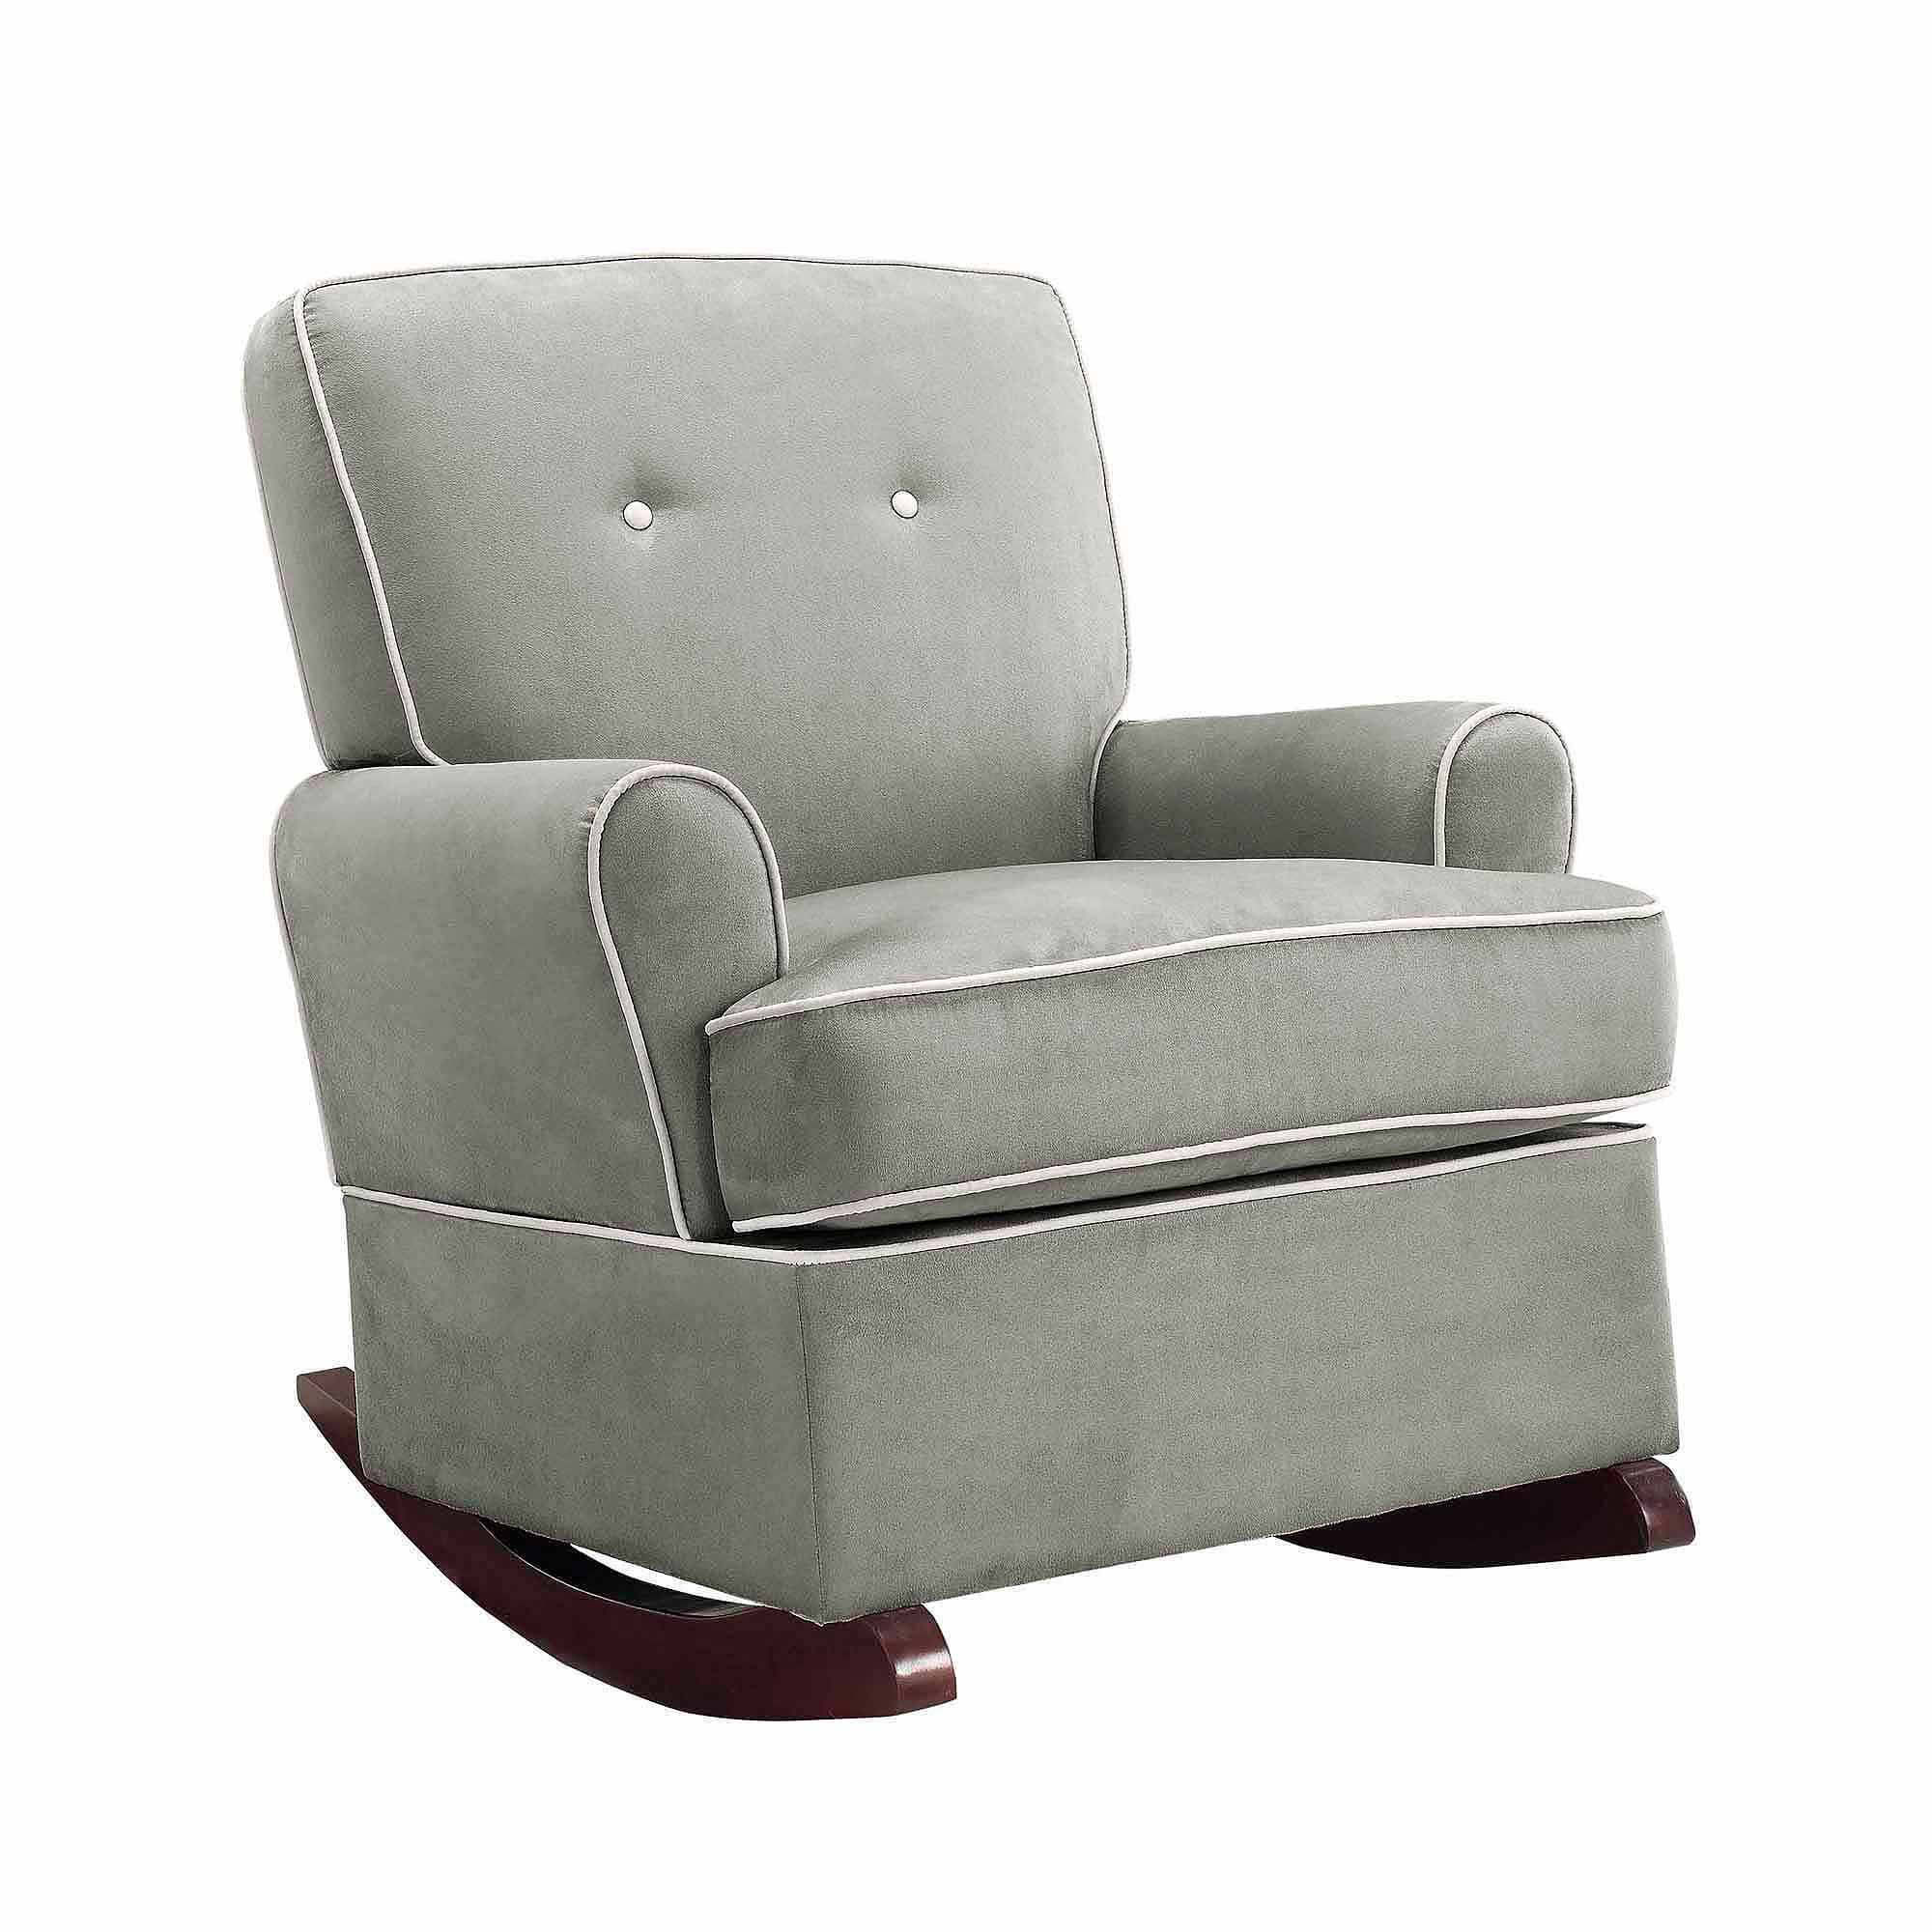 Baby Relax Tinsley Rocker, Choose Your Color   Walmart.com